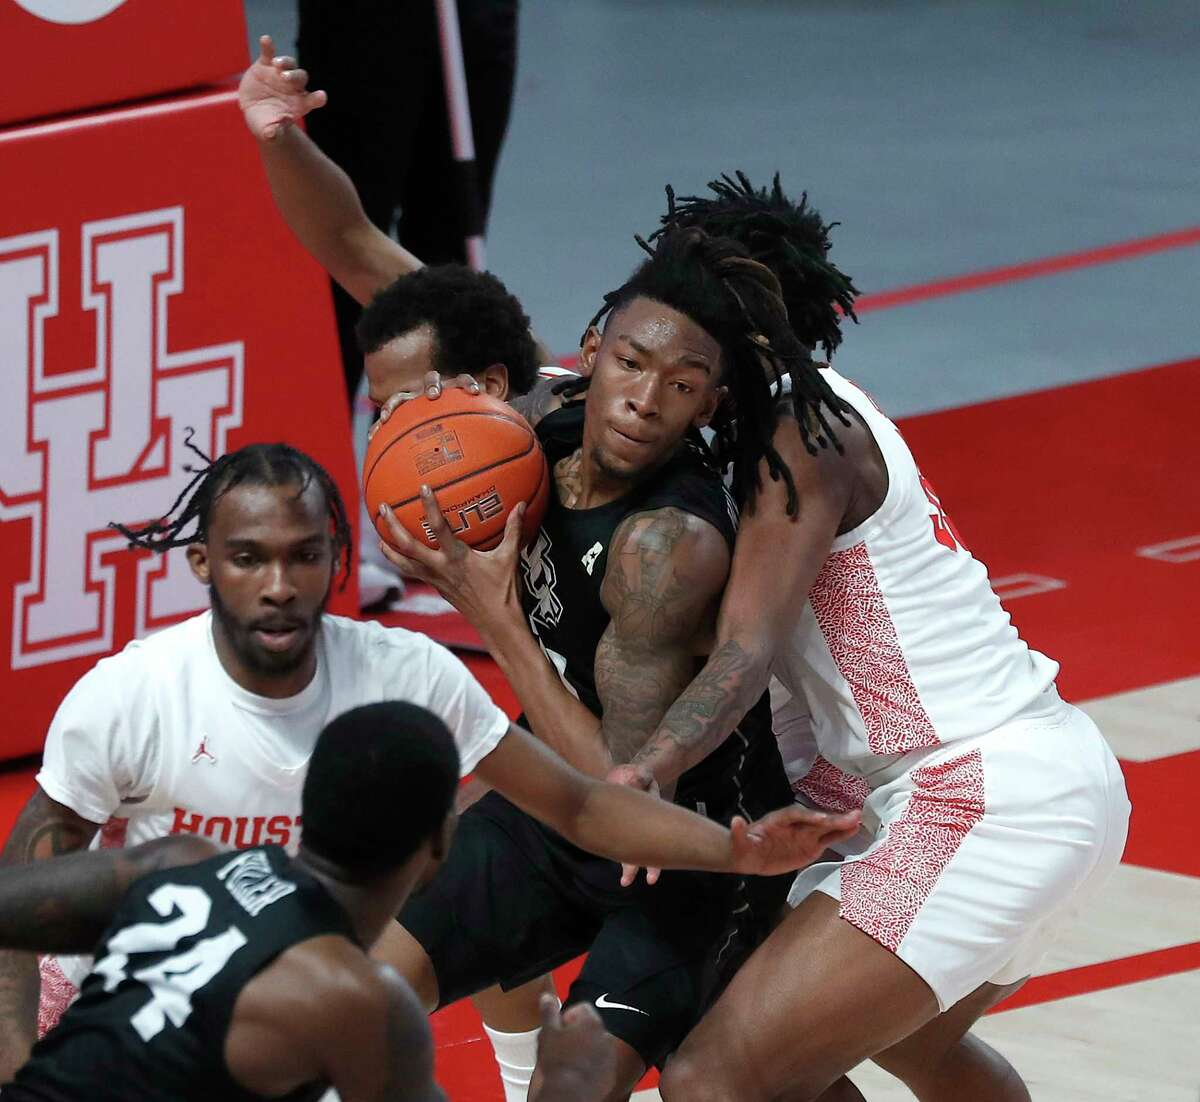 UCF Knights forward C.J. Walker (21) is surrounded by Houston Cougars during the first half of a men's NCAA basketball game at the Fertitta Center, in Houston, Sunday, Jan. 17, 2021.